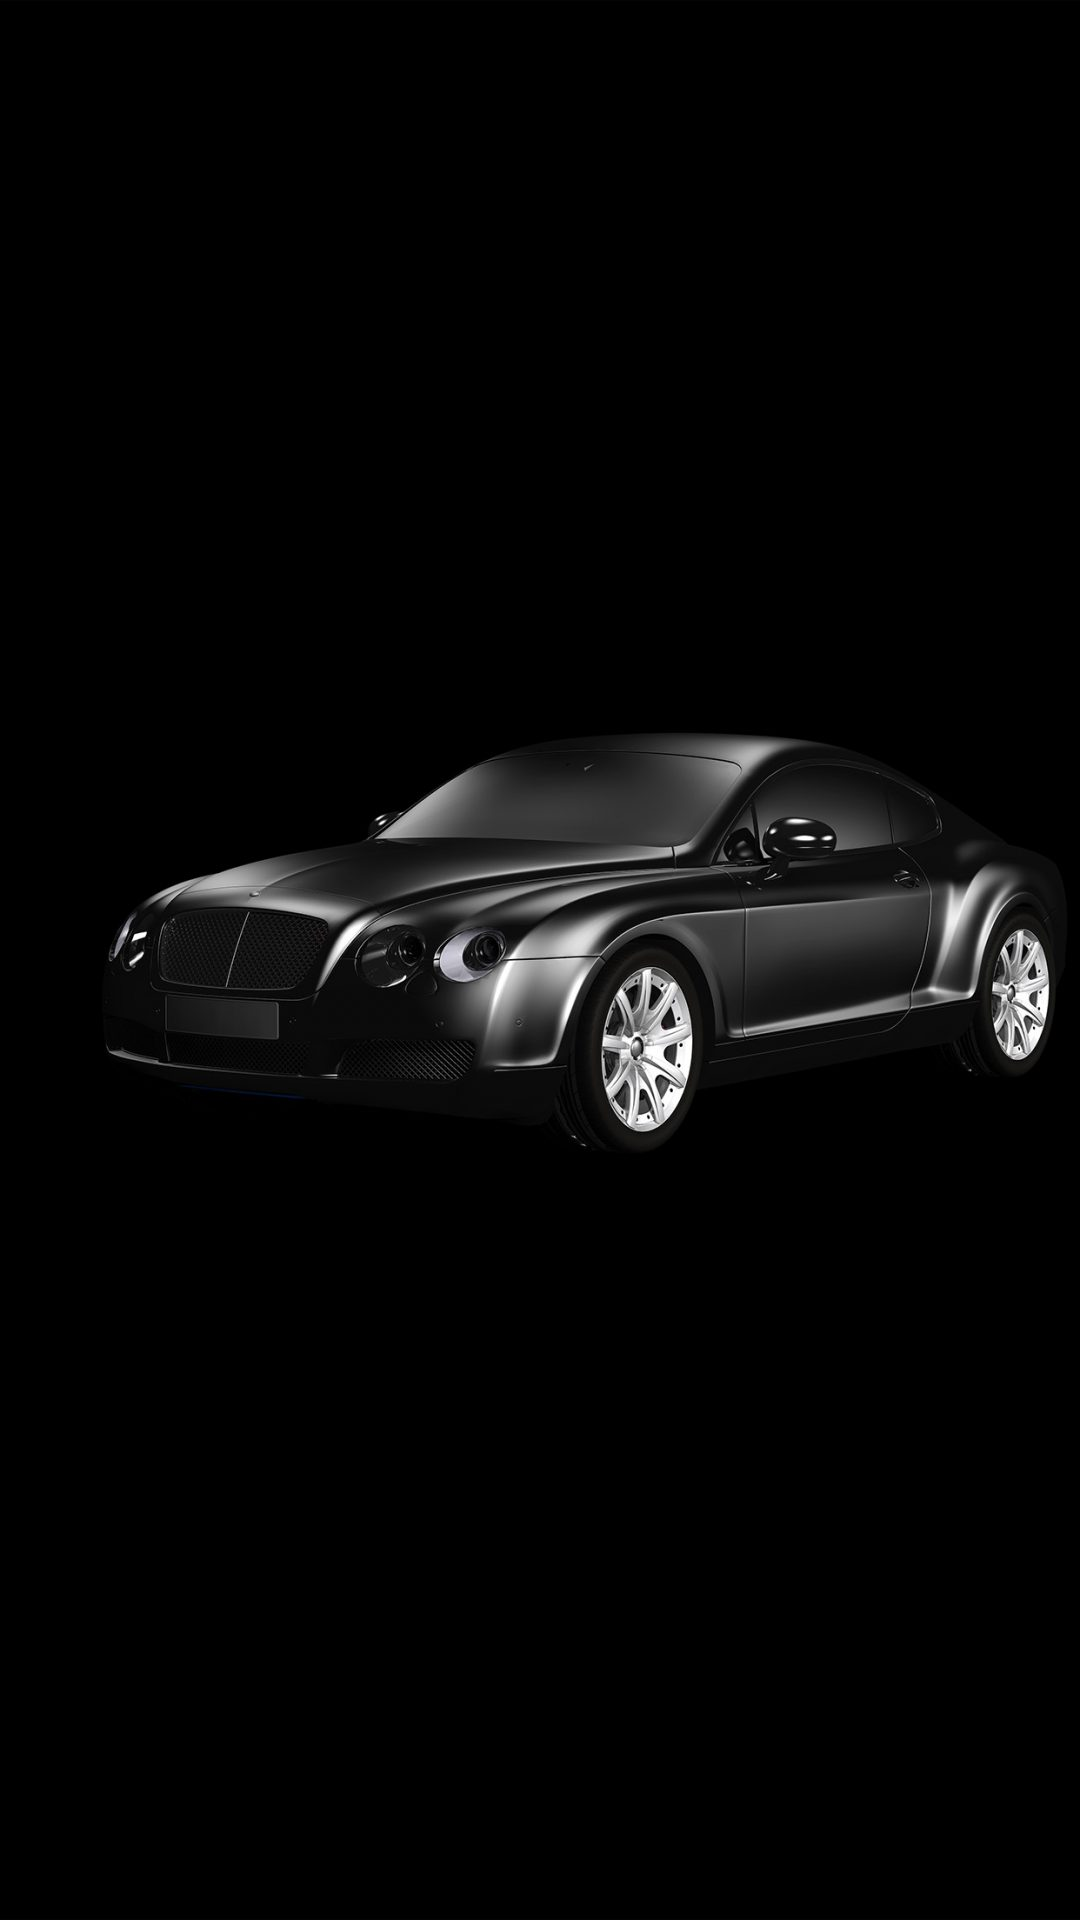 Car Bentley Dark Black Limousine Art Illustration